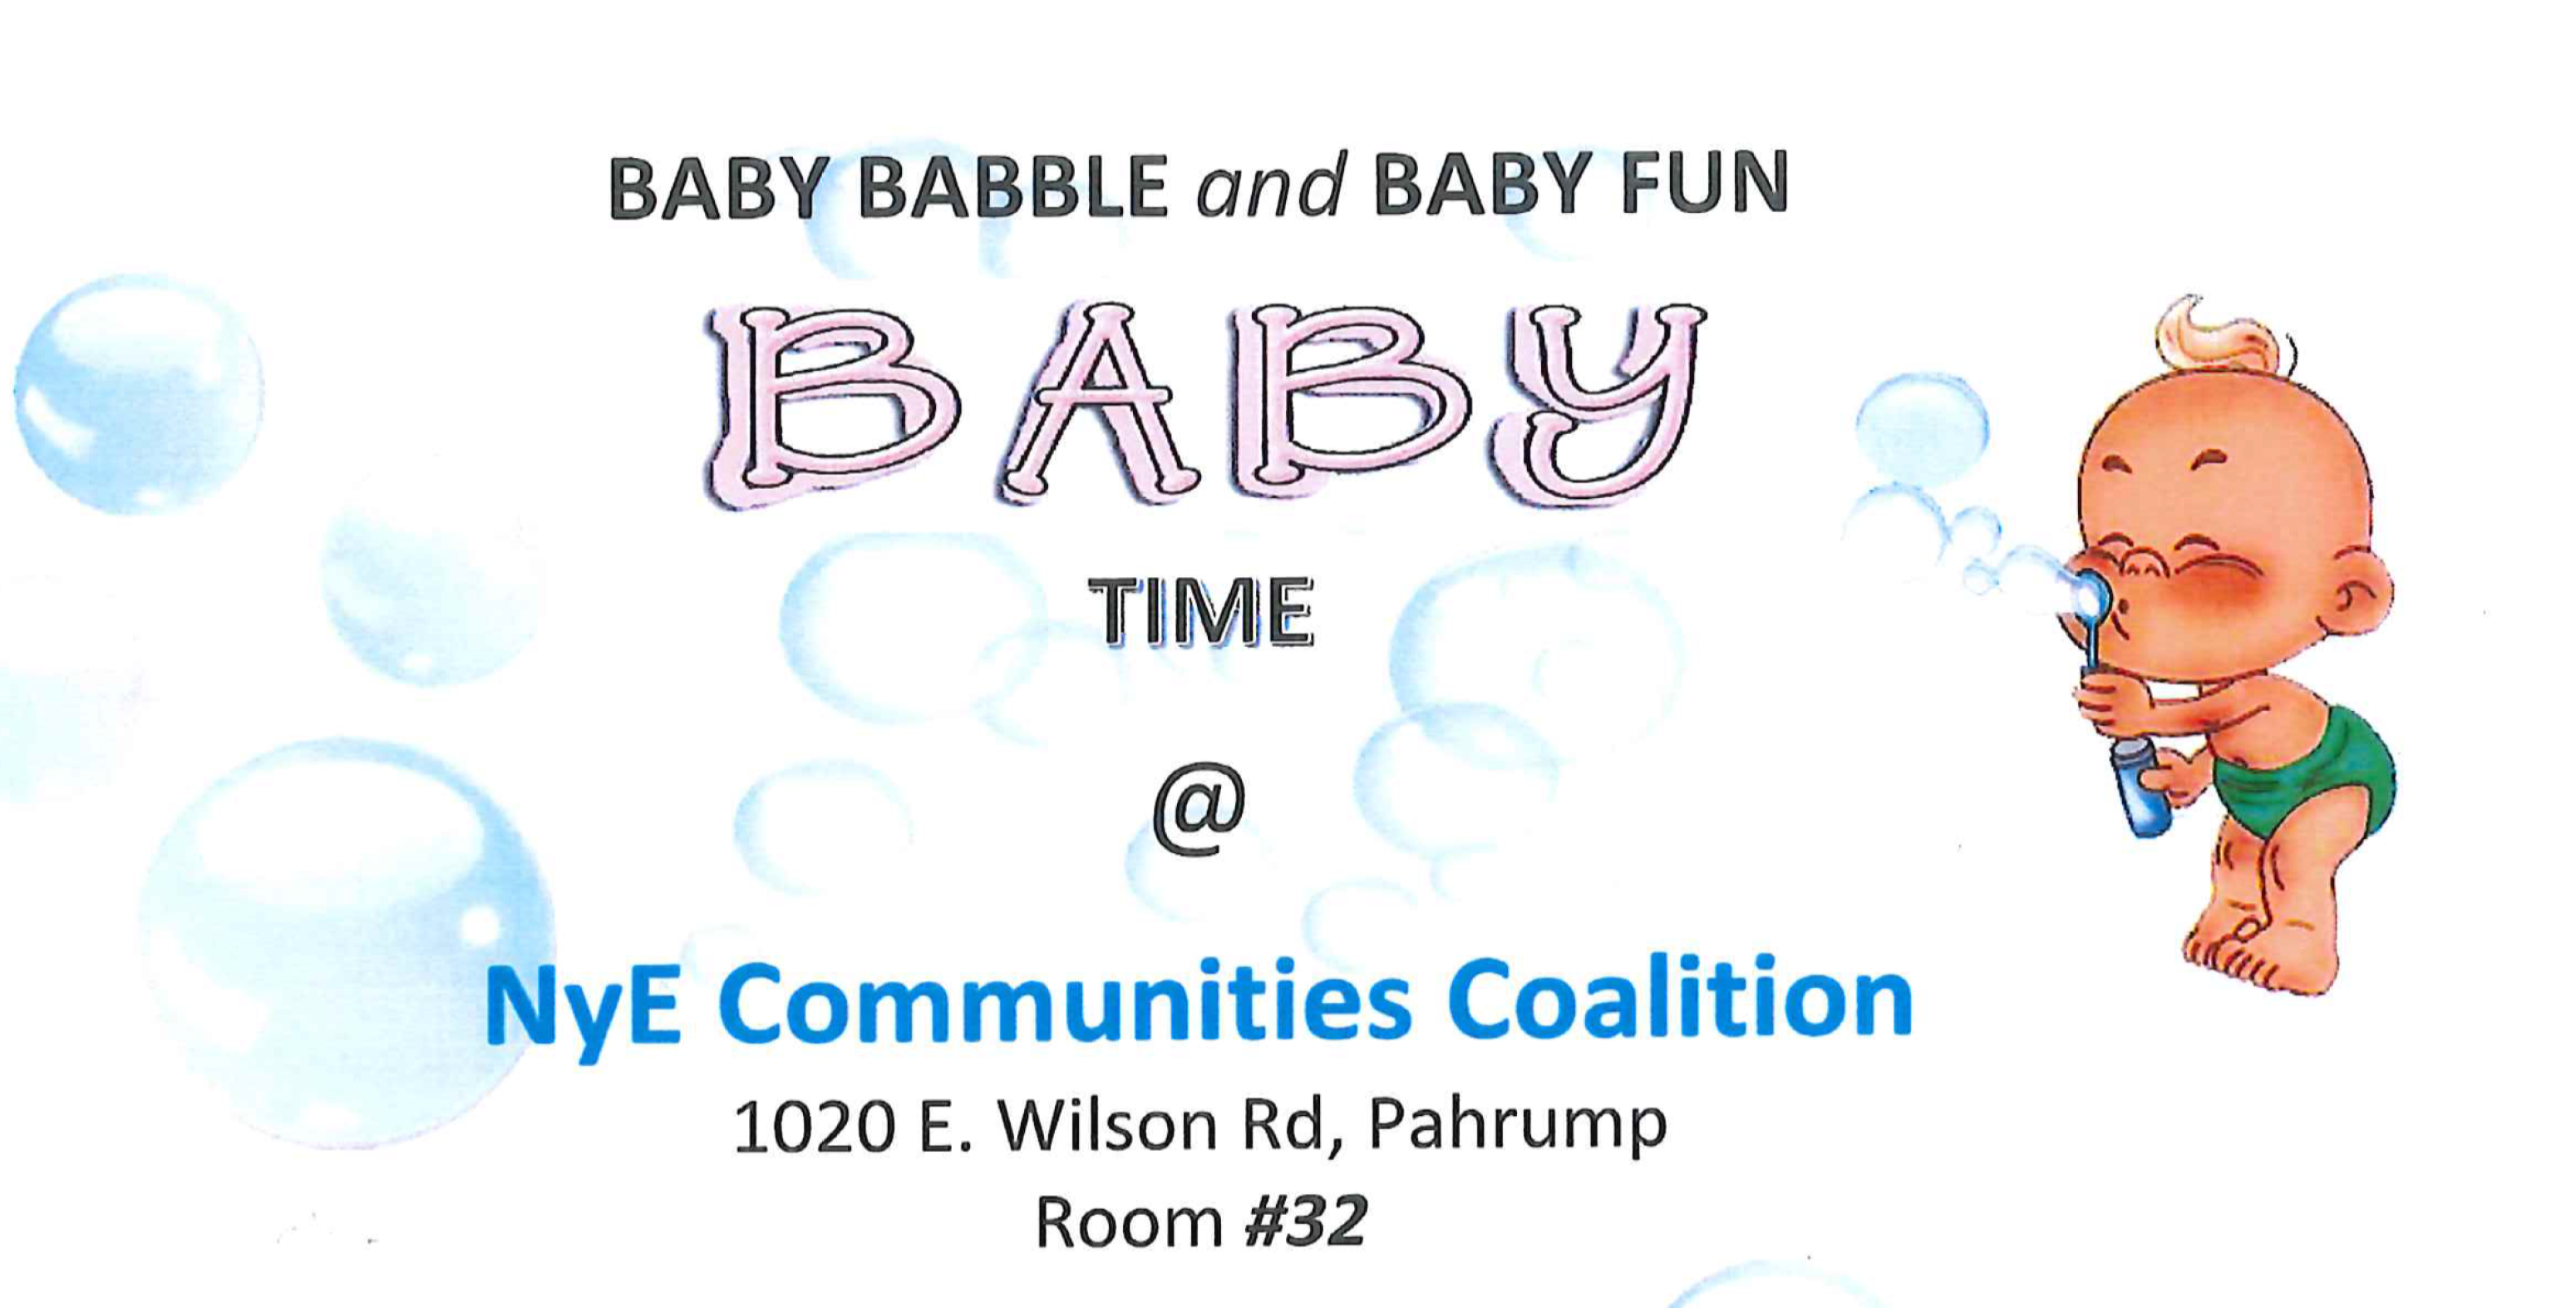 BabyTime @ NyE Communities Coalition